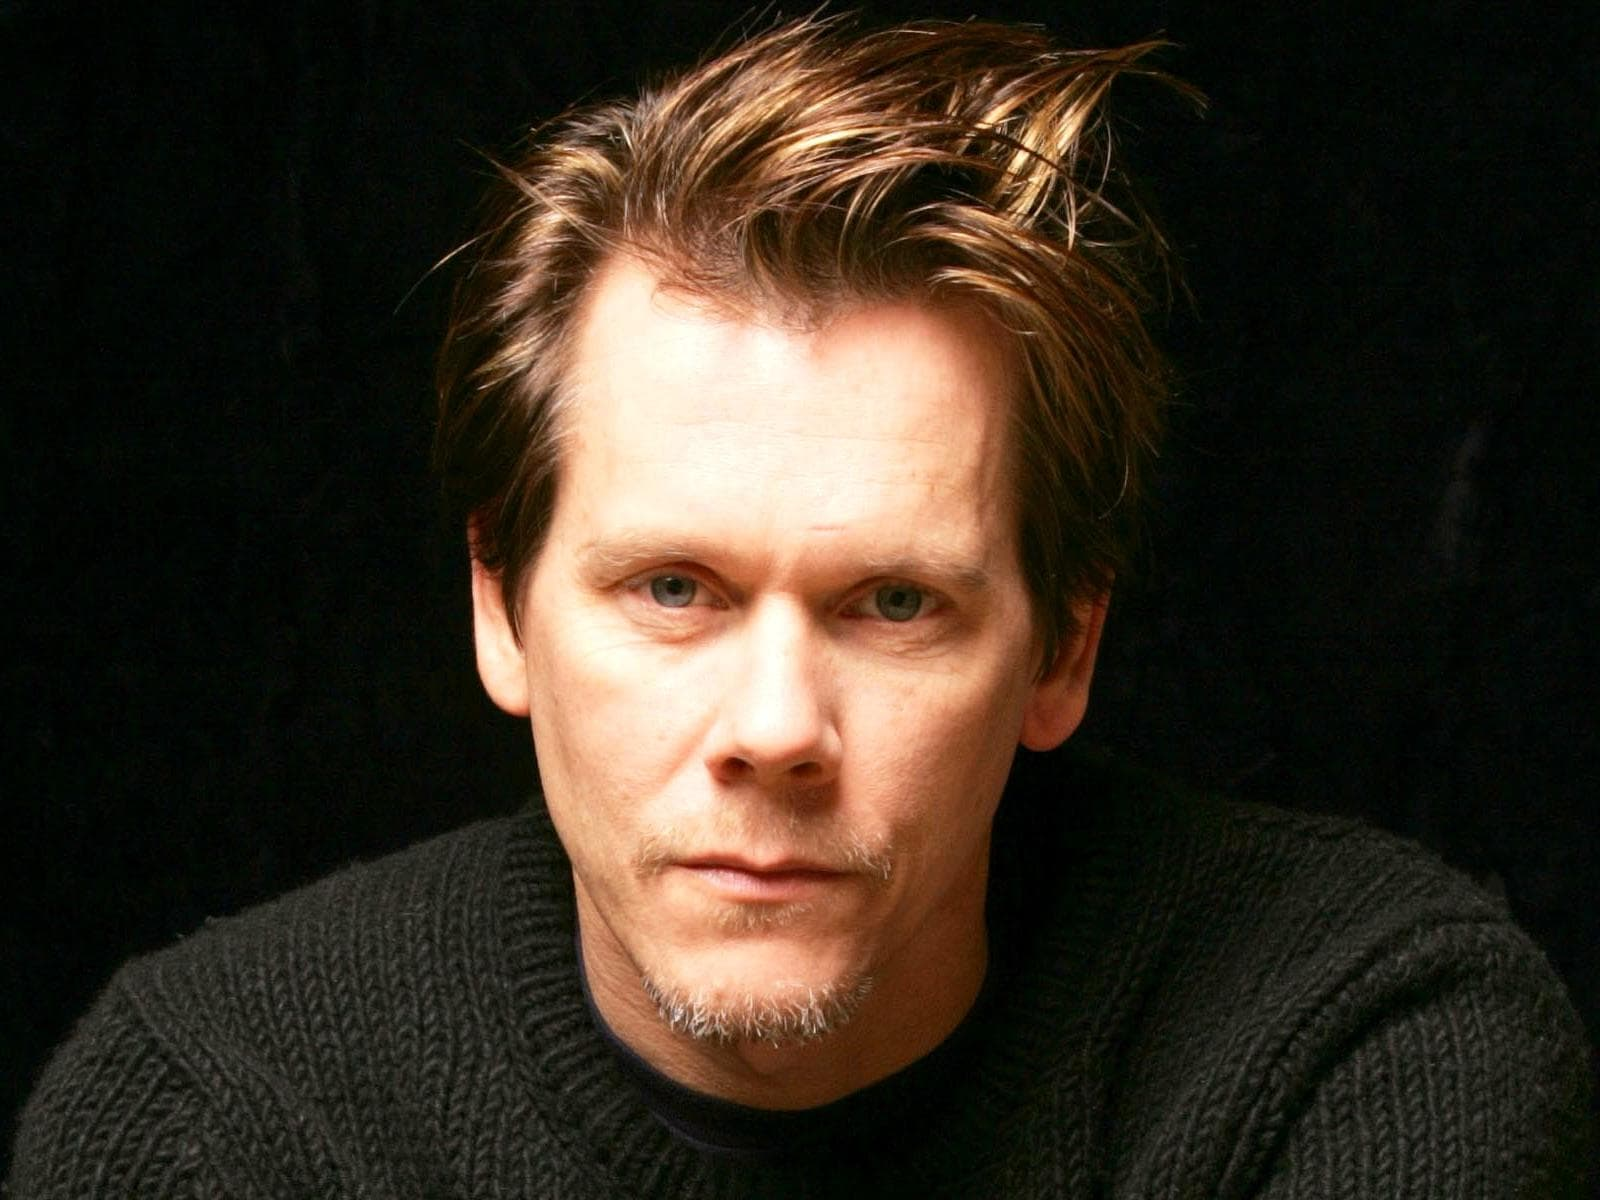 Kevin Bacon HD Desktop Wallpapers 7wallpapersnet 1600x1200